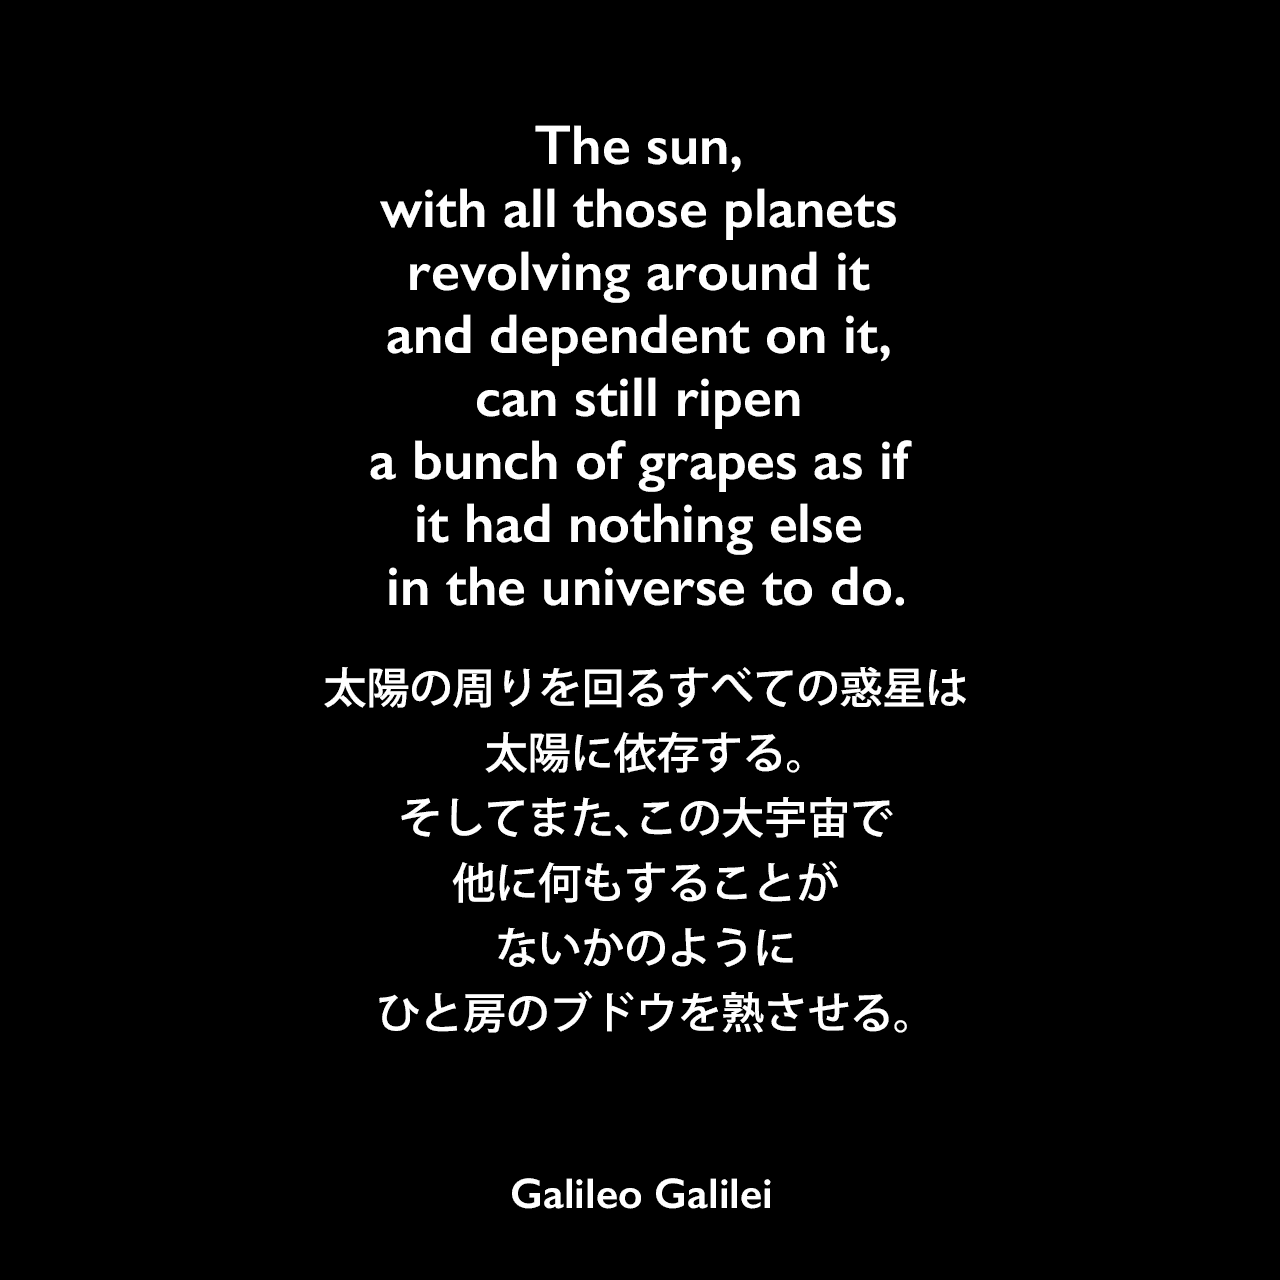 The sun, with all those planets revolving around it and dependent on it, can still ripen a bunch of grapes as if it had nothing else in the universe to do.太陽の周りを回るすべての惑星は太陽に依存する。そしてまた、この大宇宙で他に何もすることがないかのように、ひと房のブドウを熟させる。- ガリレオの本「Dialogue of the Two Chief World Systems」よりGalileo Galilei